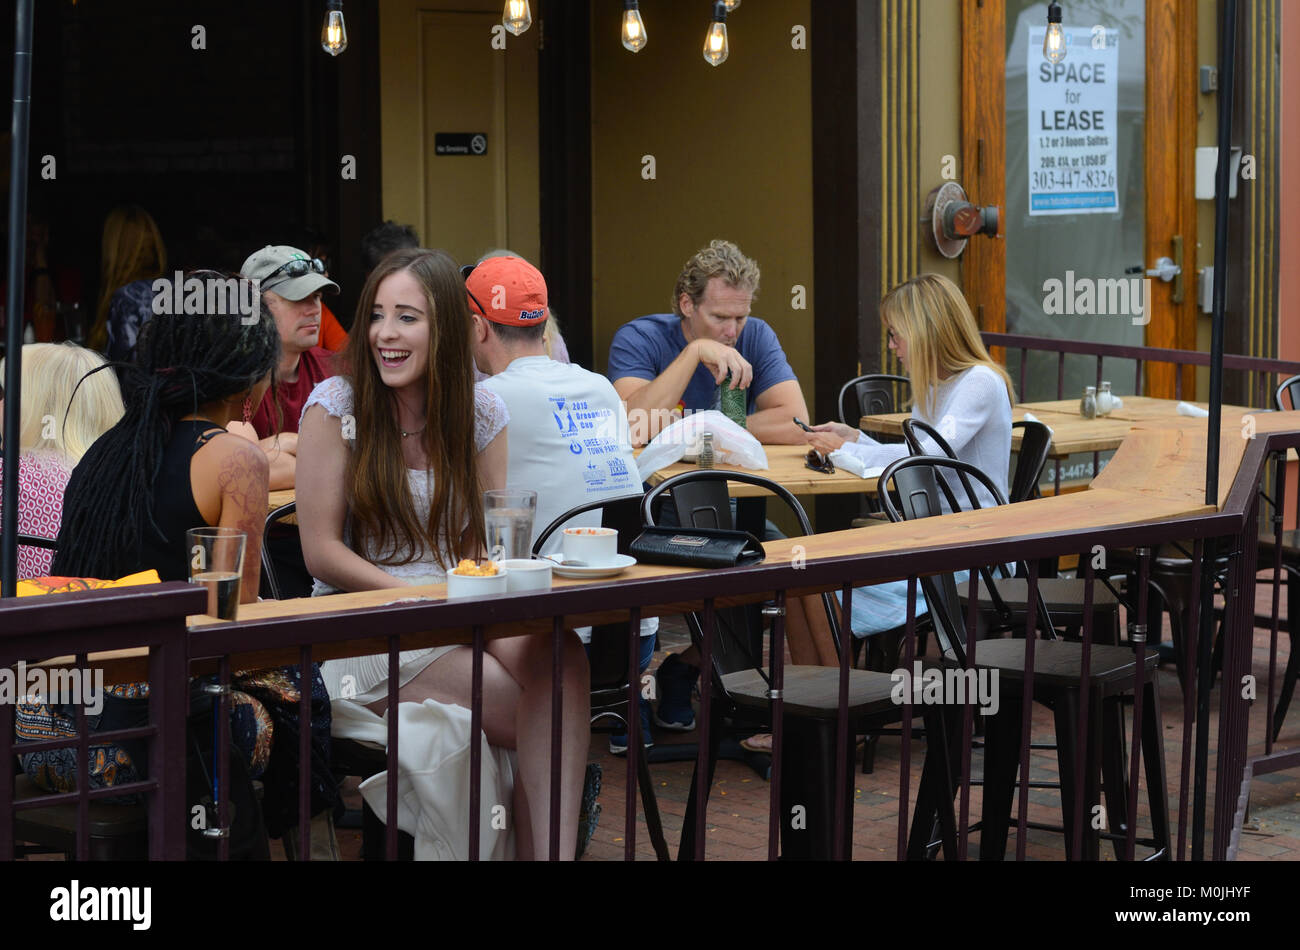 Patrons Of A Casual Restaurant On Pearl St Mall In Boulder Co